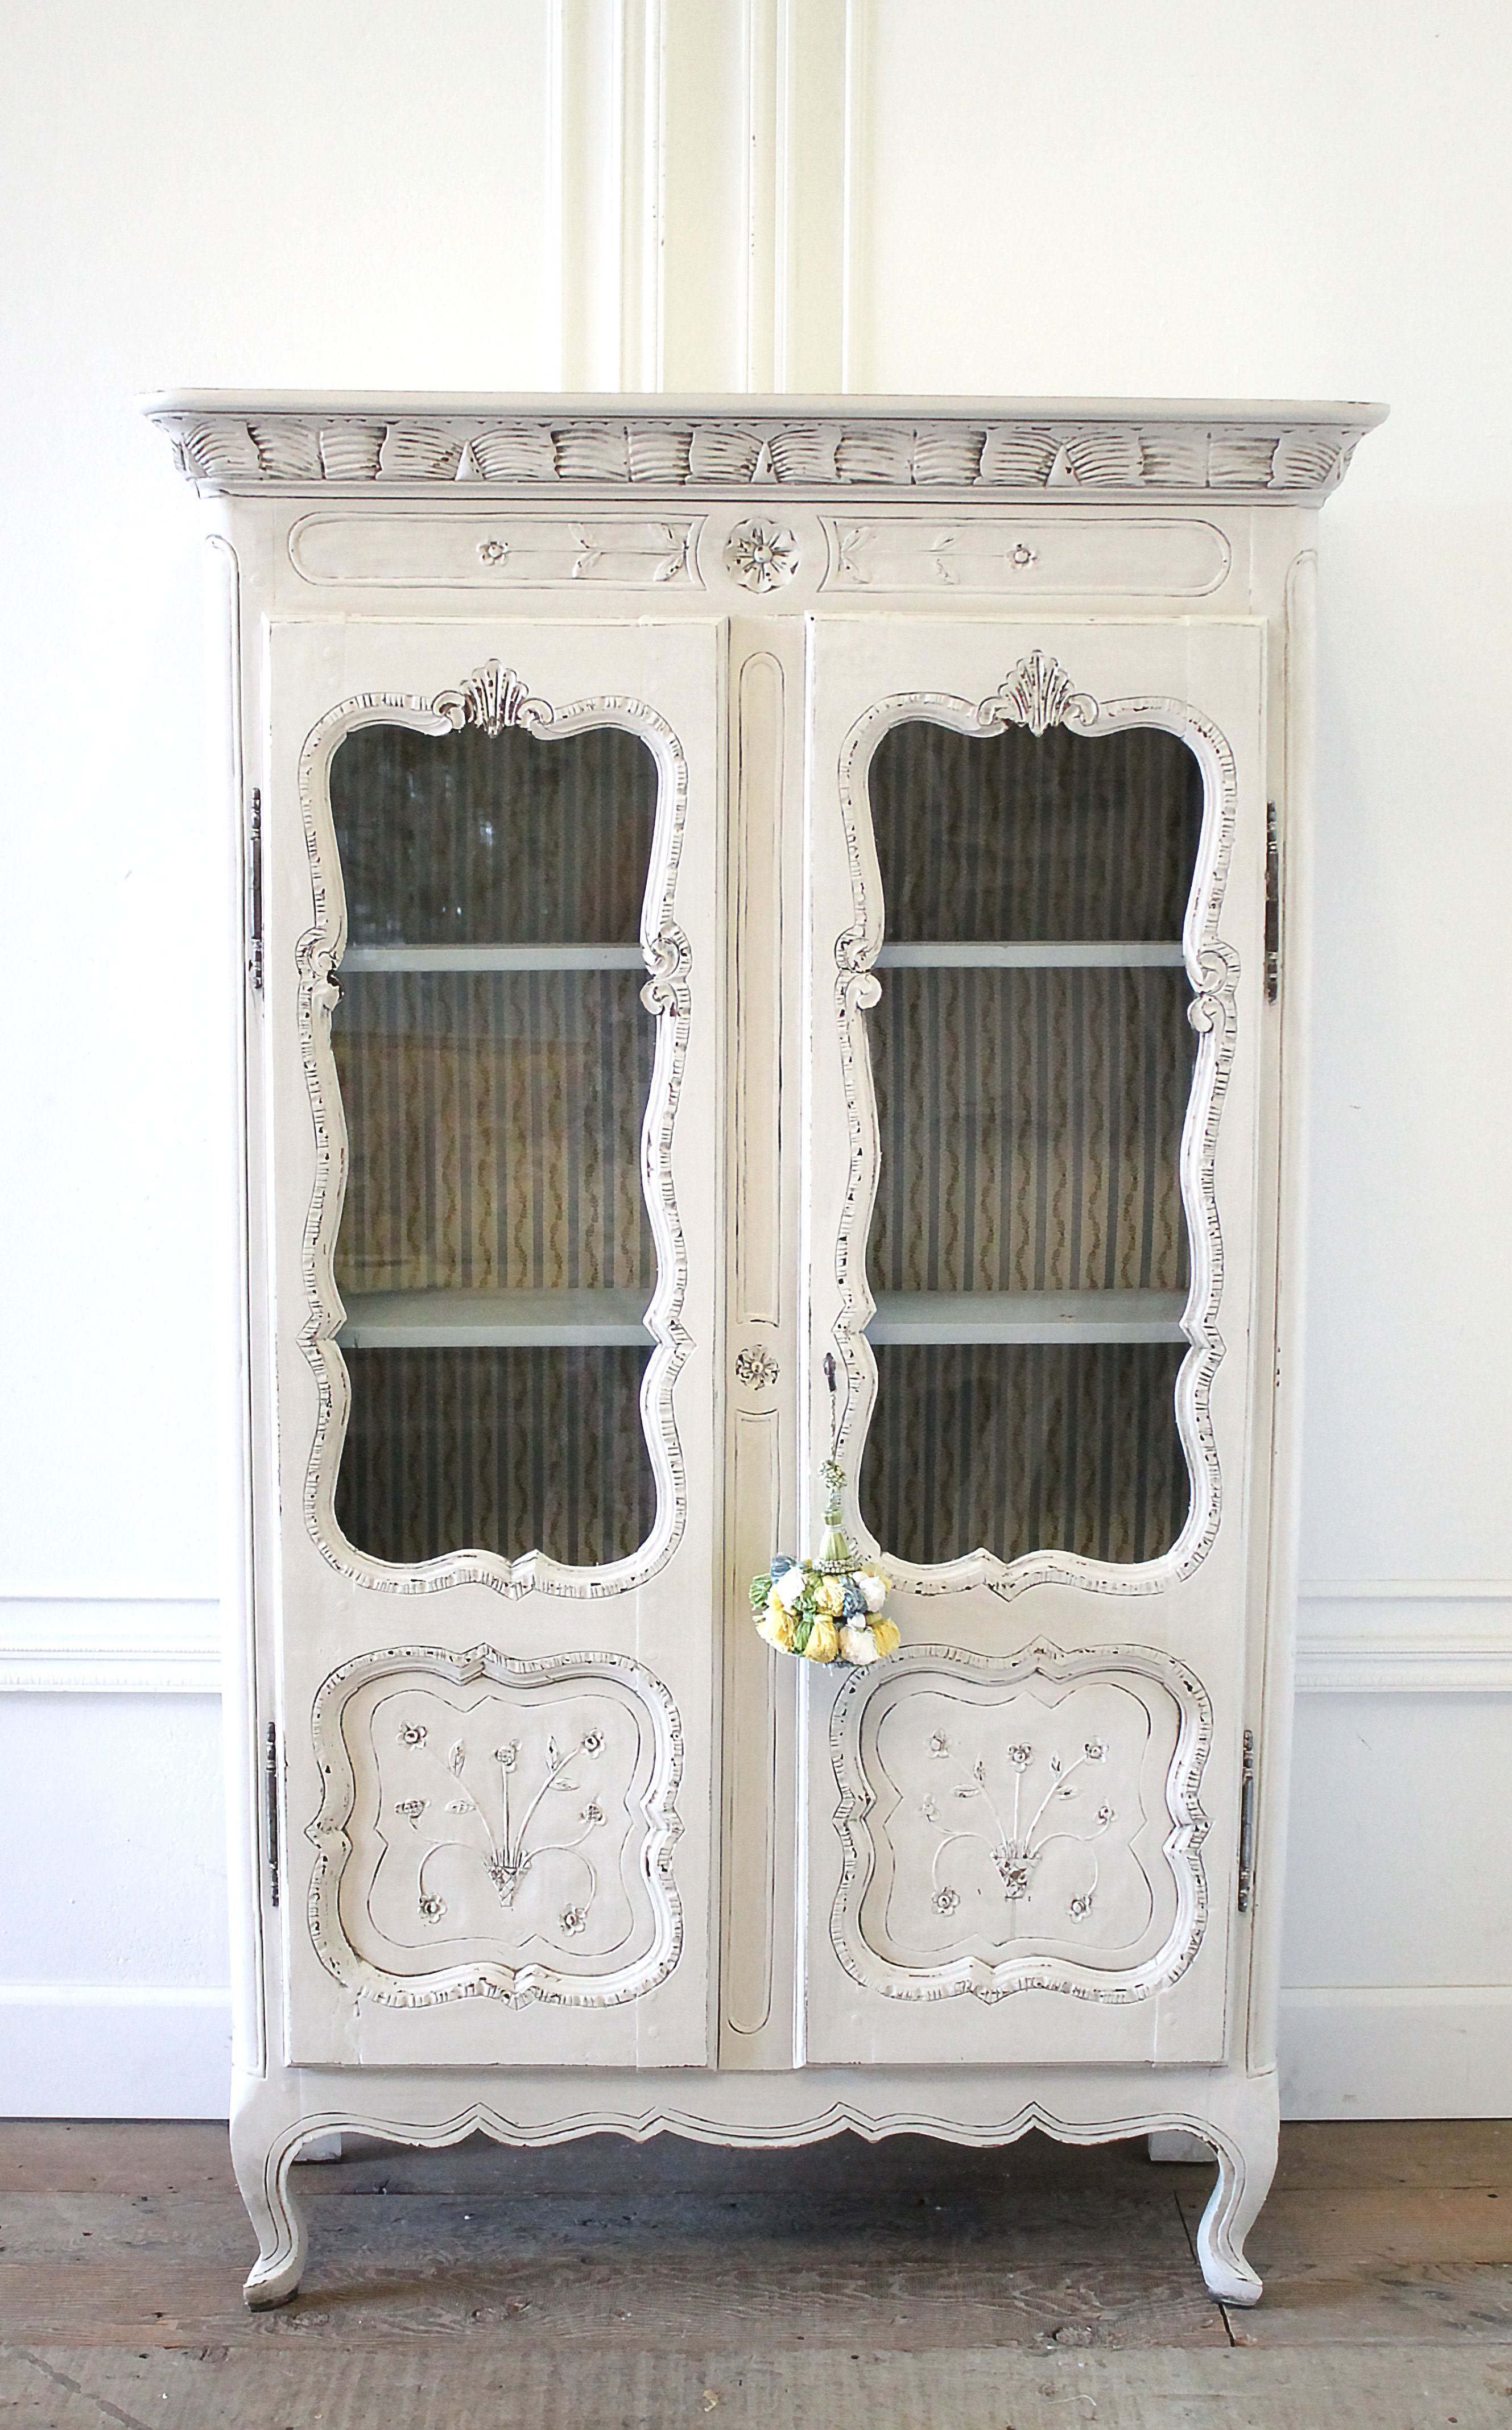 Early 19th Century Pee Painted Country French Cupboard Was 3 996 Now 2 900